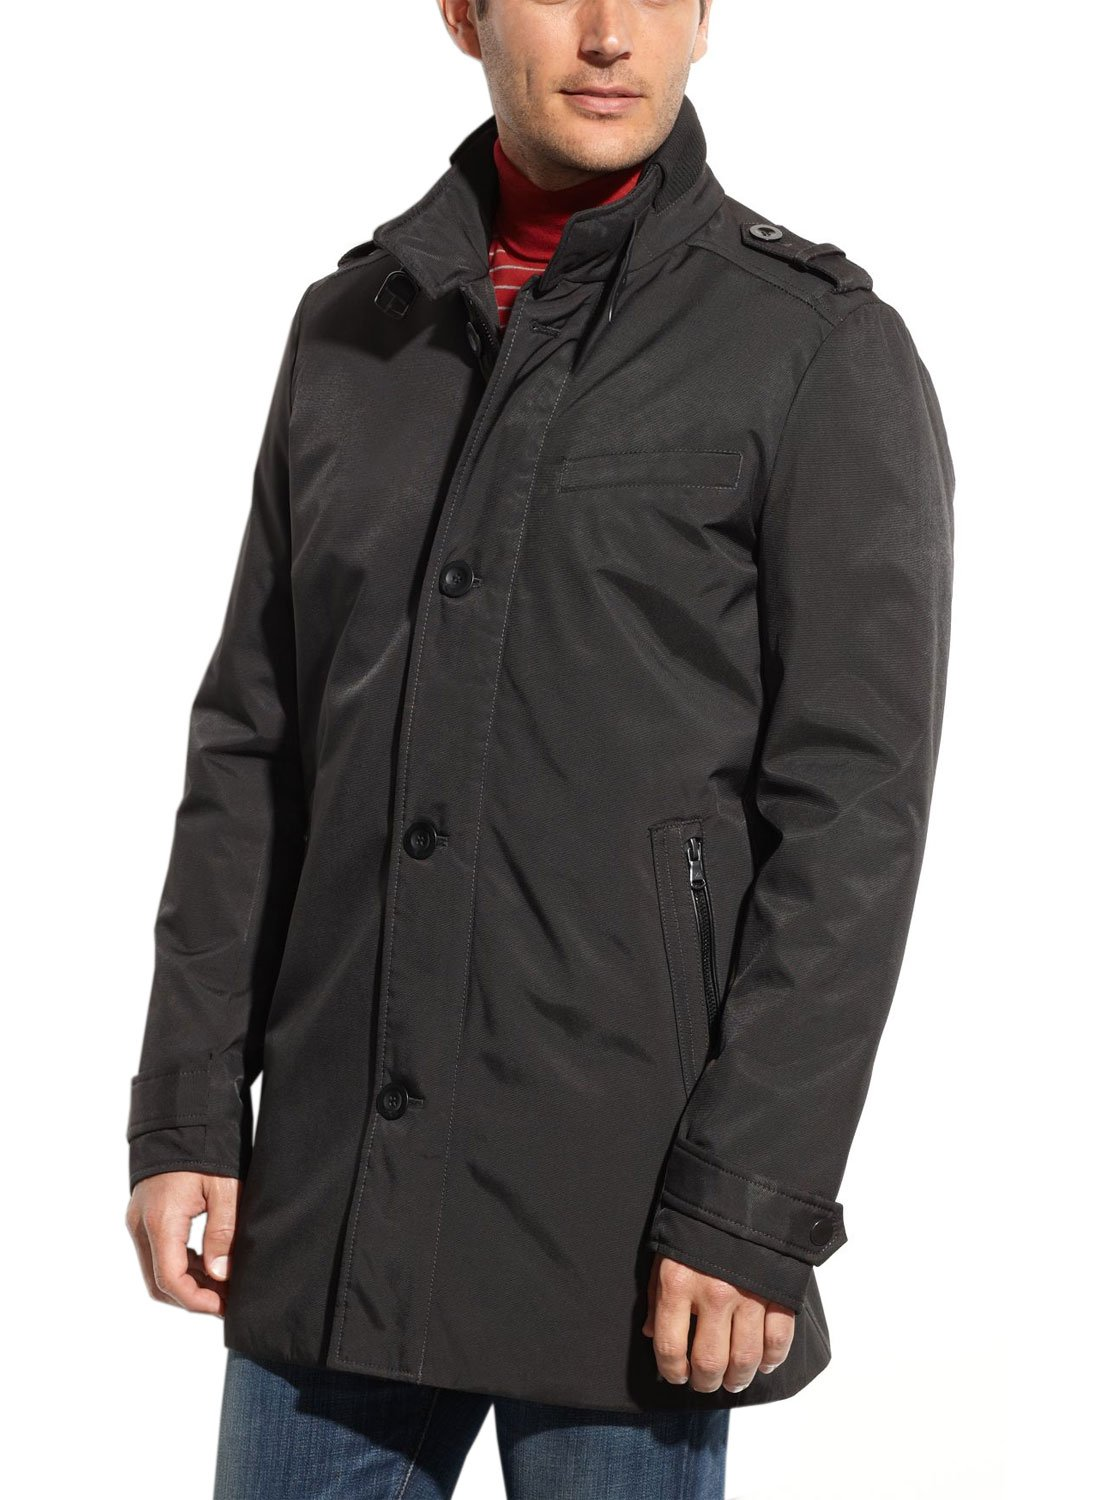 Kenneth Cole New York Ottoman Black New Military Full Zip Trenchcoat (Medium) by Kenneth Cole